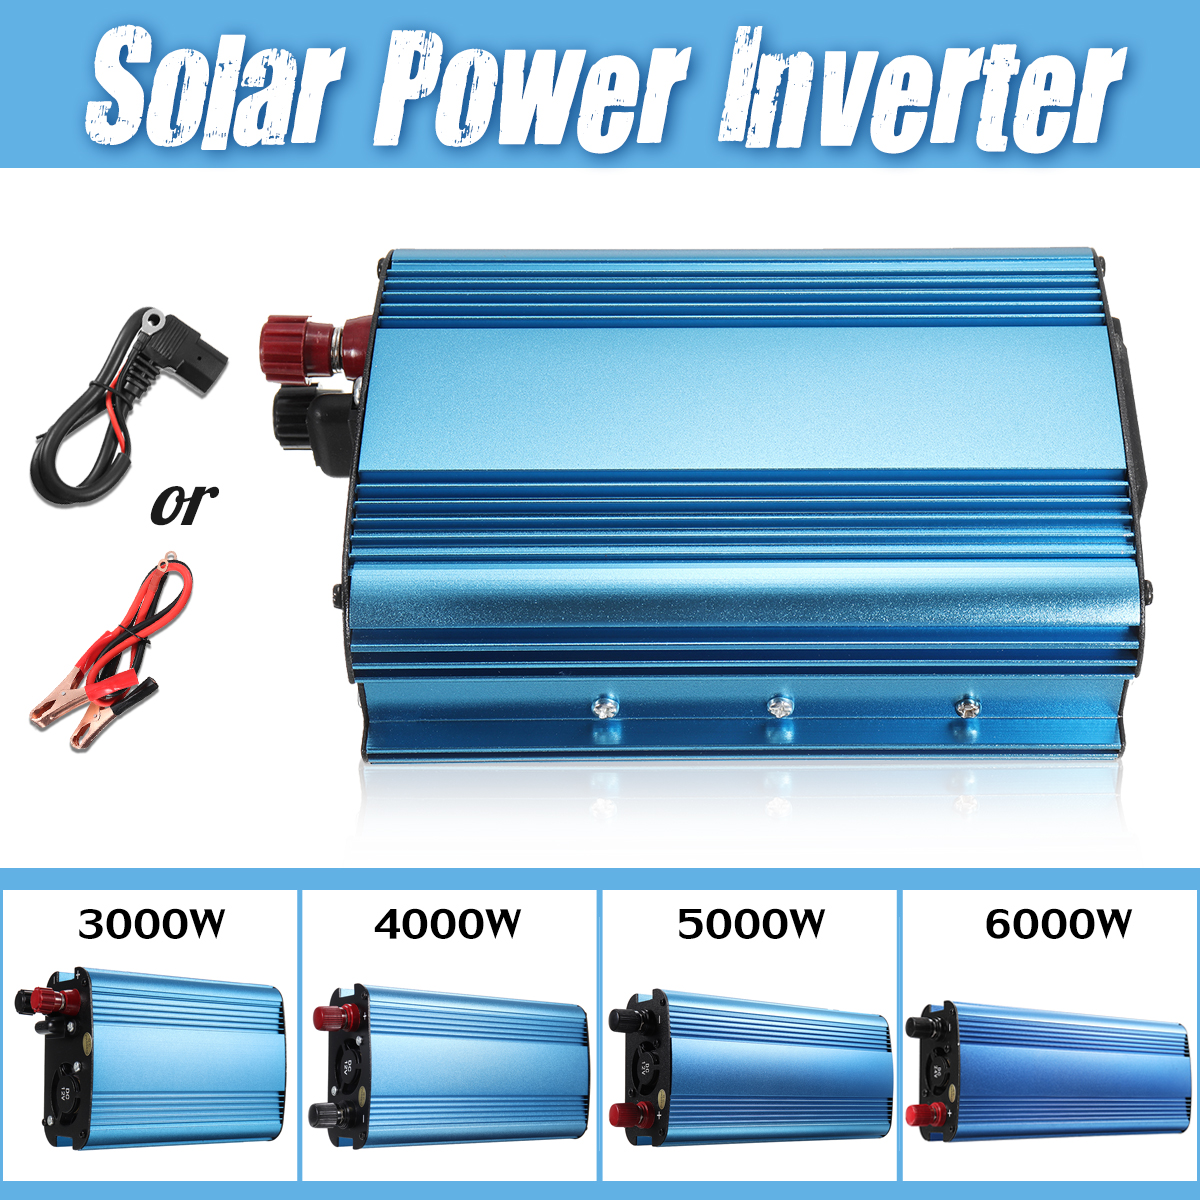 цена на 6000W/5000W/4000W/3000W Power Inverter DC 12V/24V/48V/60V To AC 220V Sine Wave Solar Inverter Car Charger Voltage Convertor